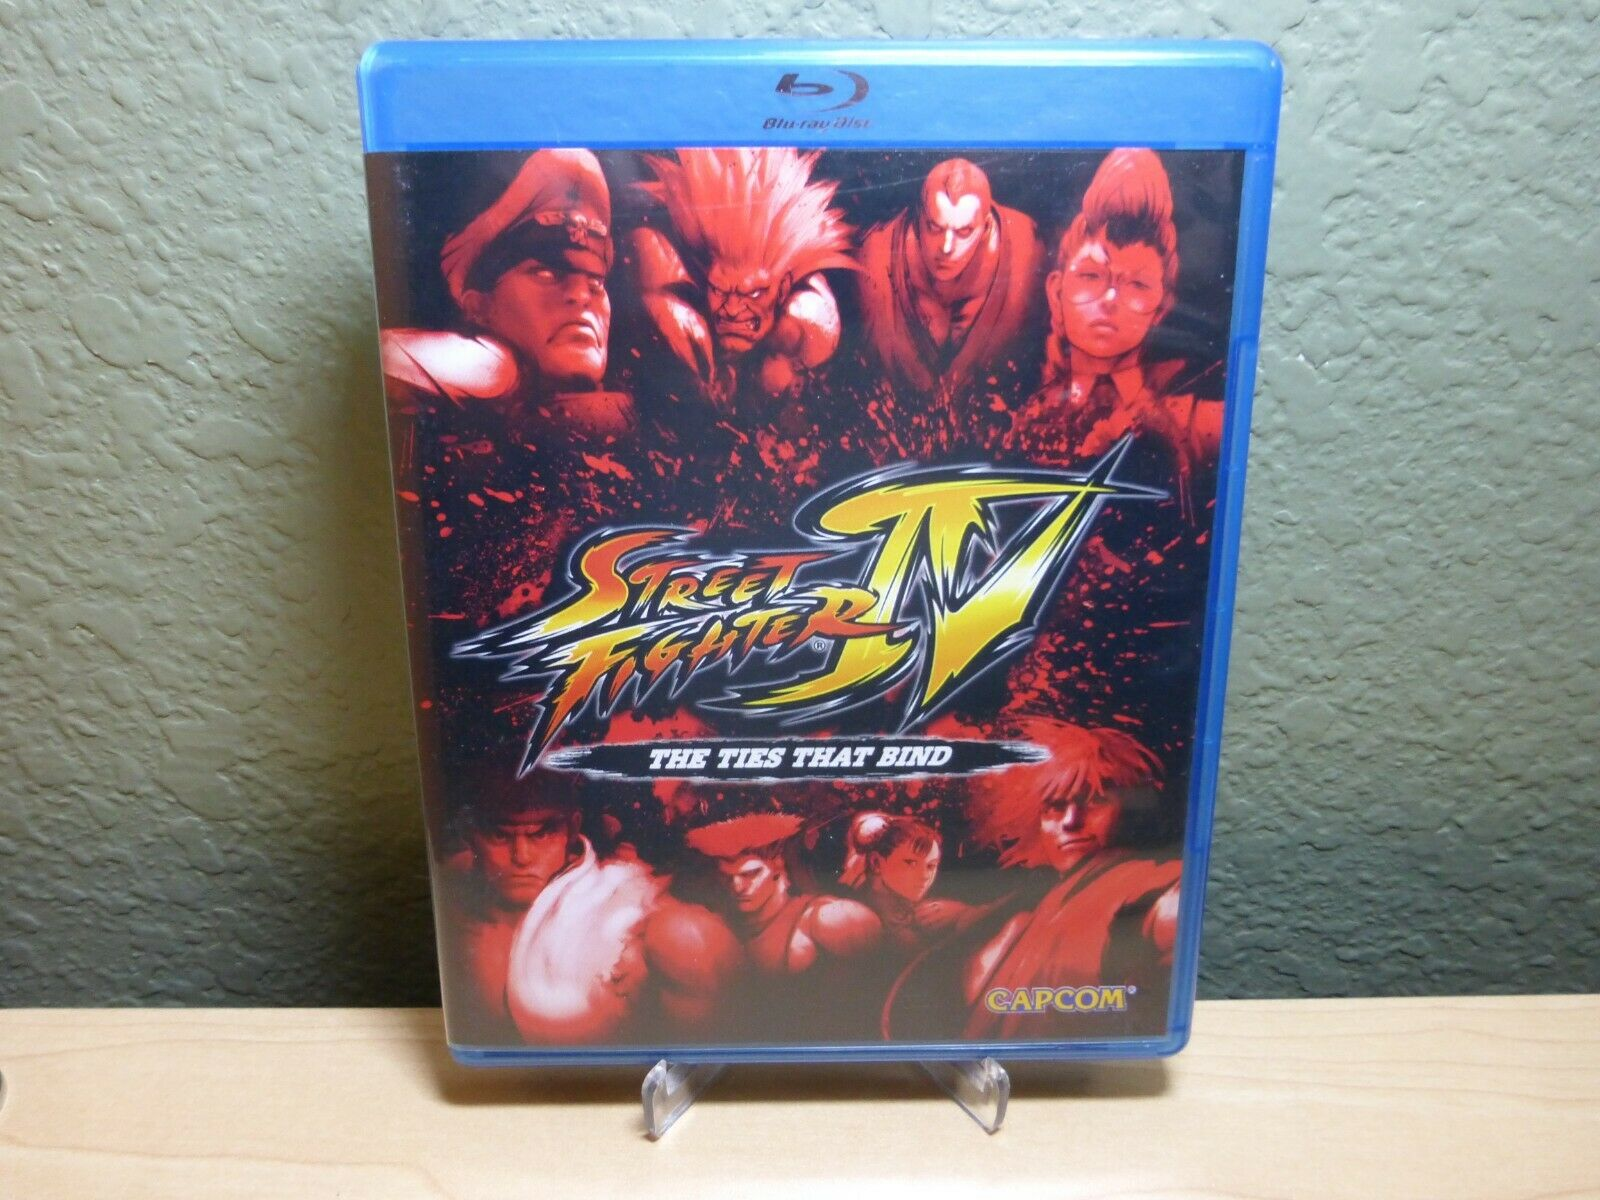 Street Fighter Iv The Ties That Bind Blu Ray Cd Two Disc Combo For Sale Online Ebay